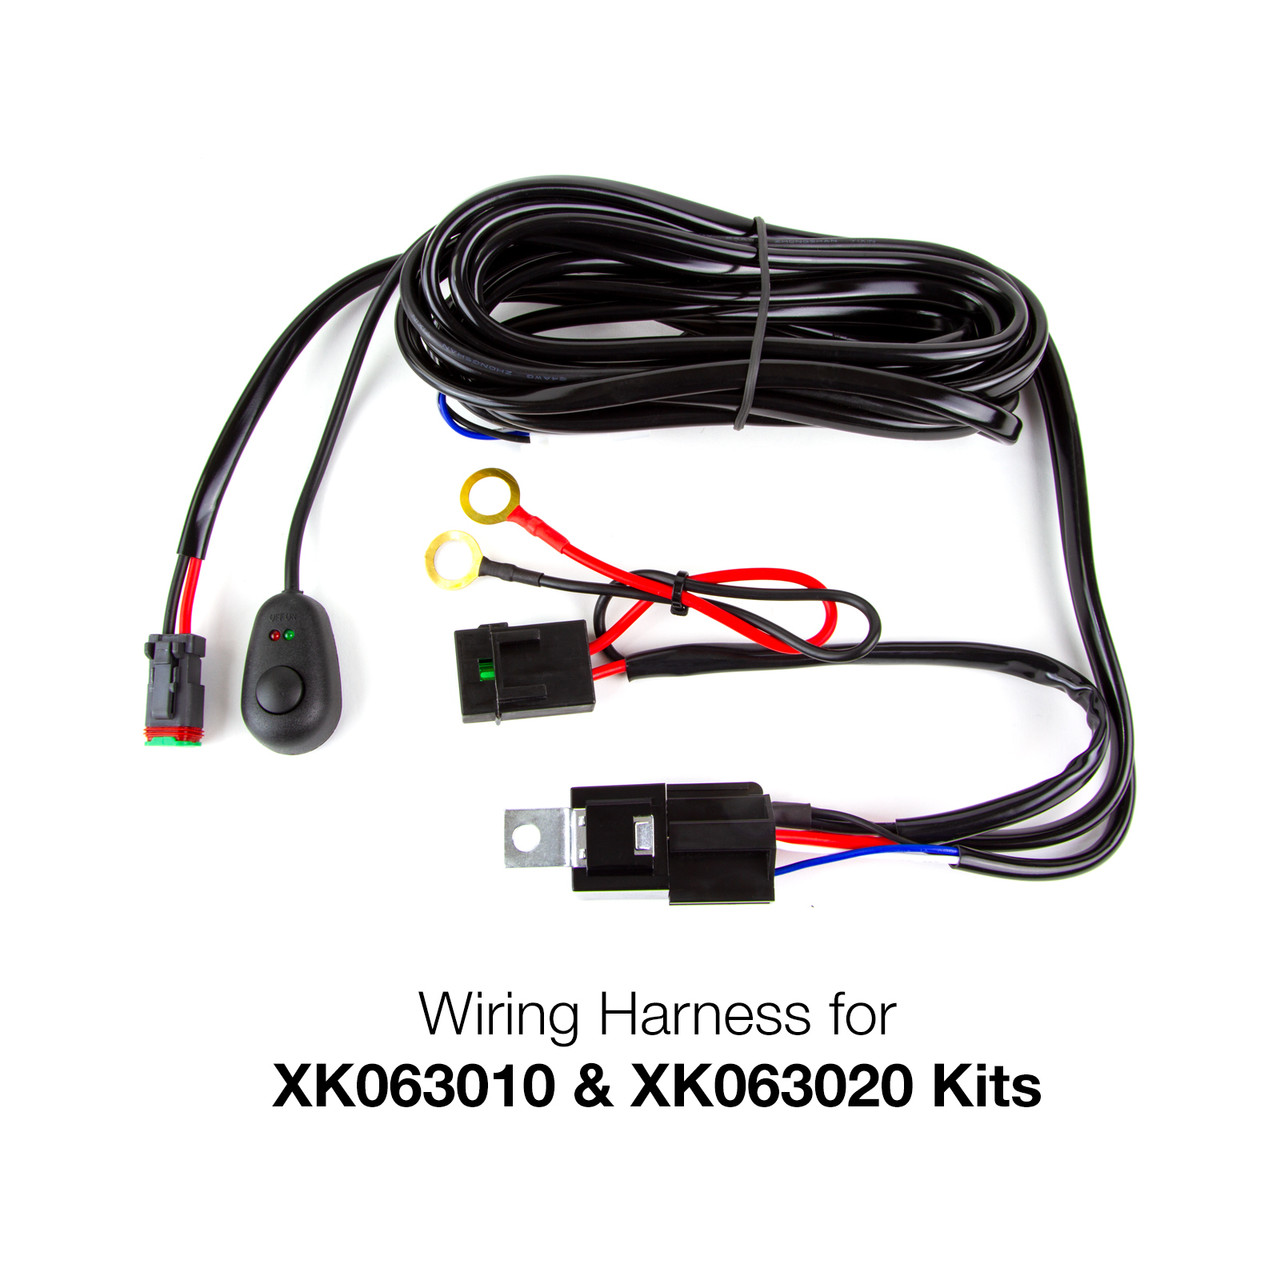 Wire Harness for 2-in-1 LED Light Bar on